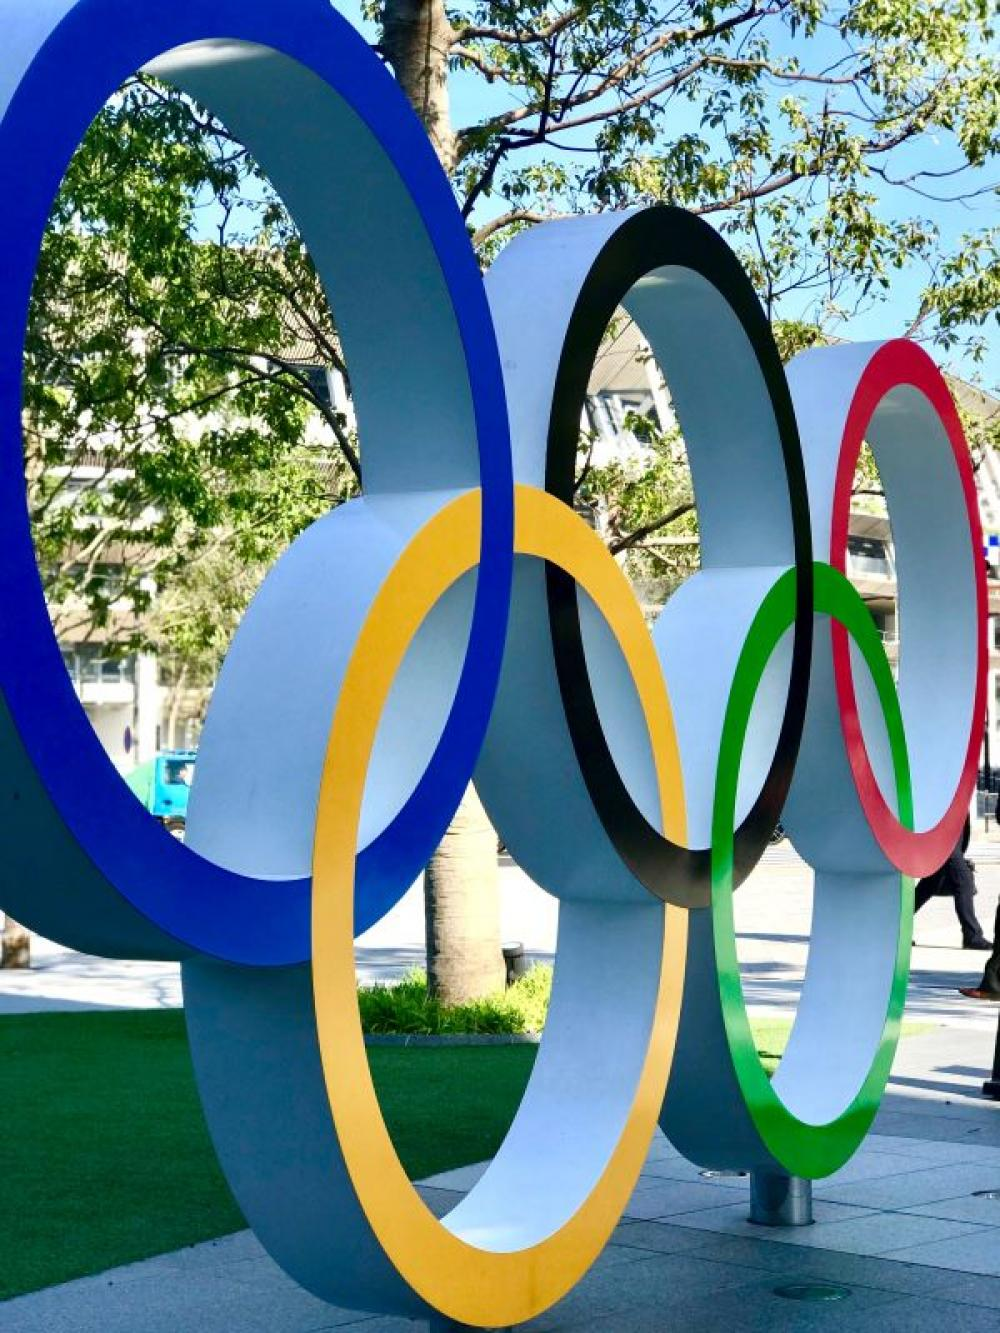 Tokyo 2020 Olympic Games chief does not rule out cancelling games